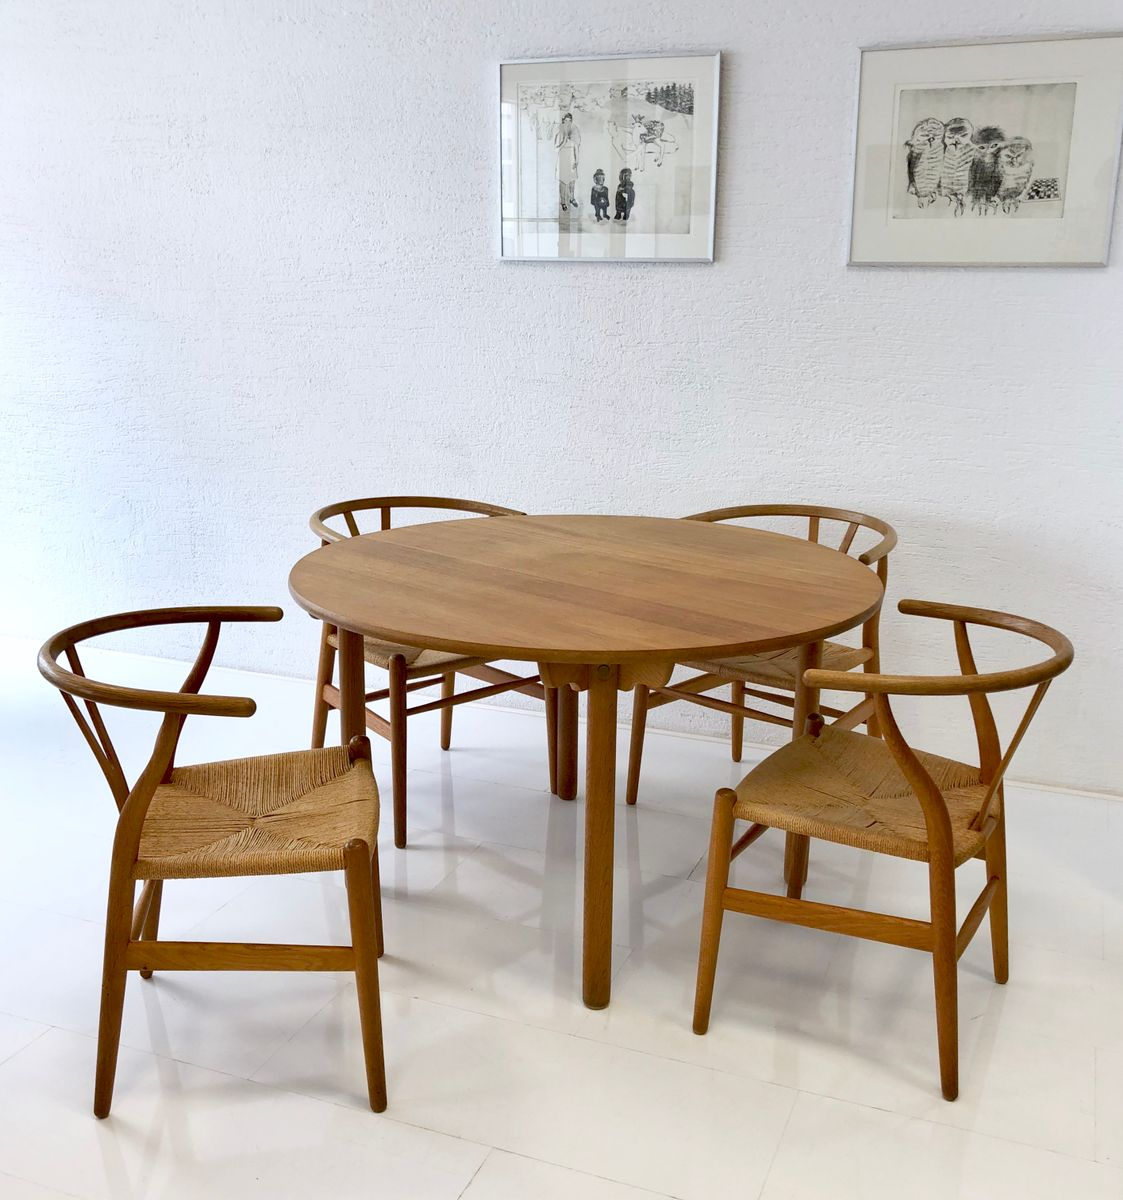 CH 24 Chairs Dining Table Set By Hans J Wegner For Carl Hansen